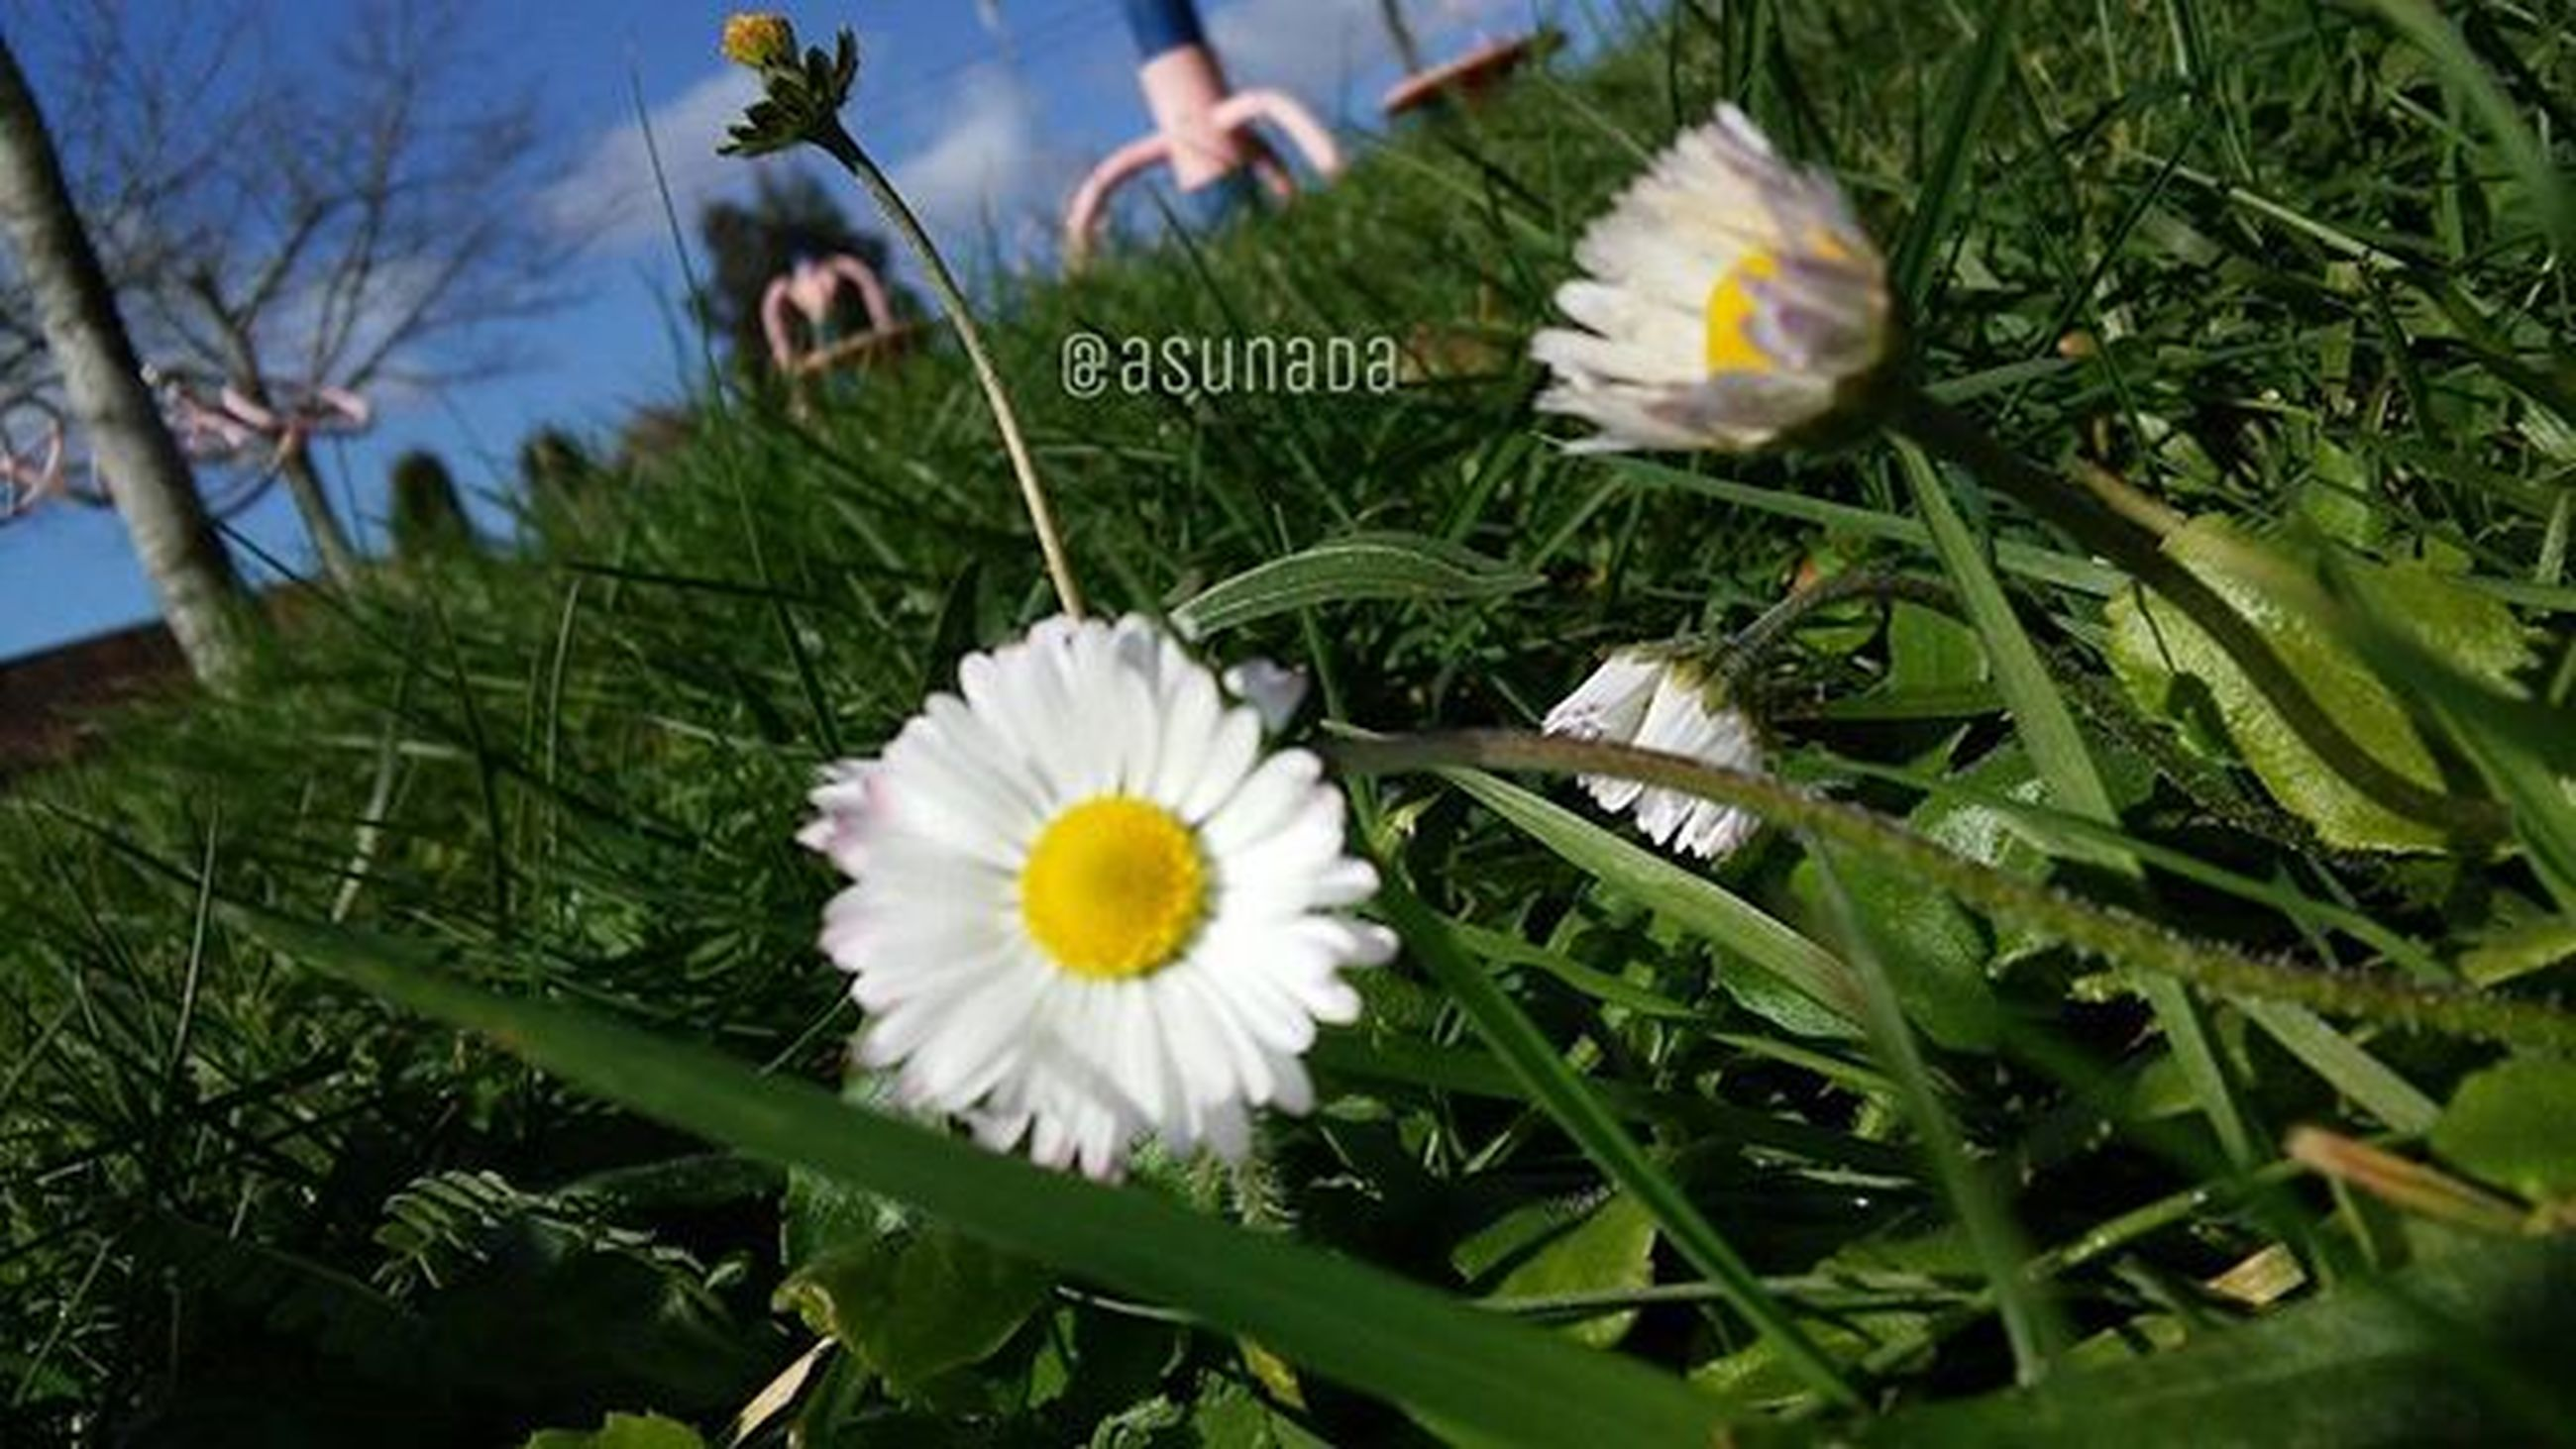 flower, growth, freshness, plant, grass, green color, white color, fragility, field, petal, flower head, high angle view, nature, beauty in nature, leaf, blooming, day, outdoors, park - man made space, grassy